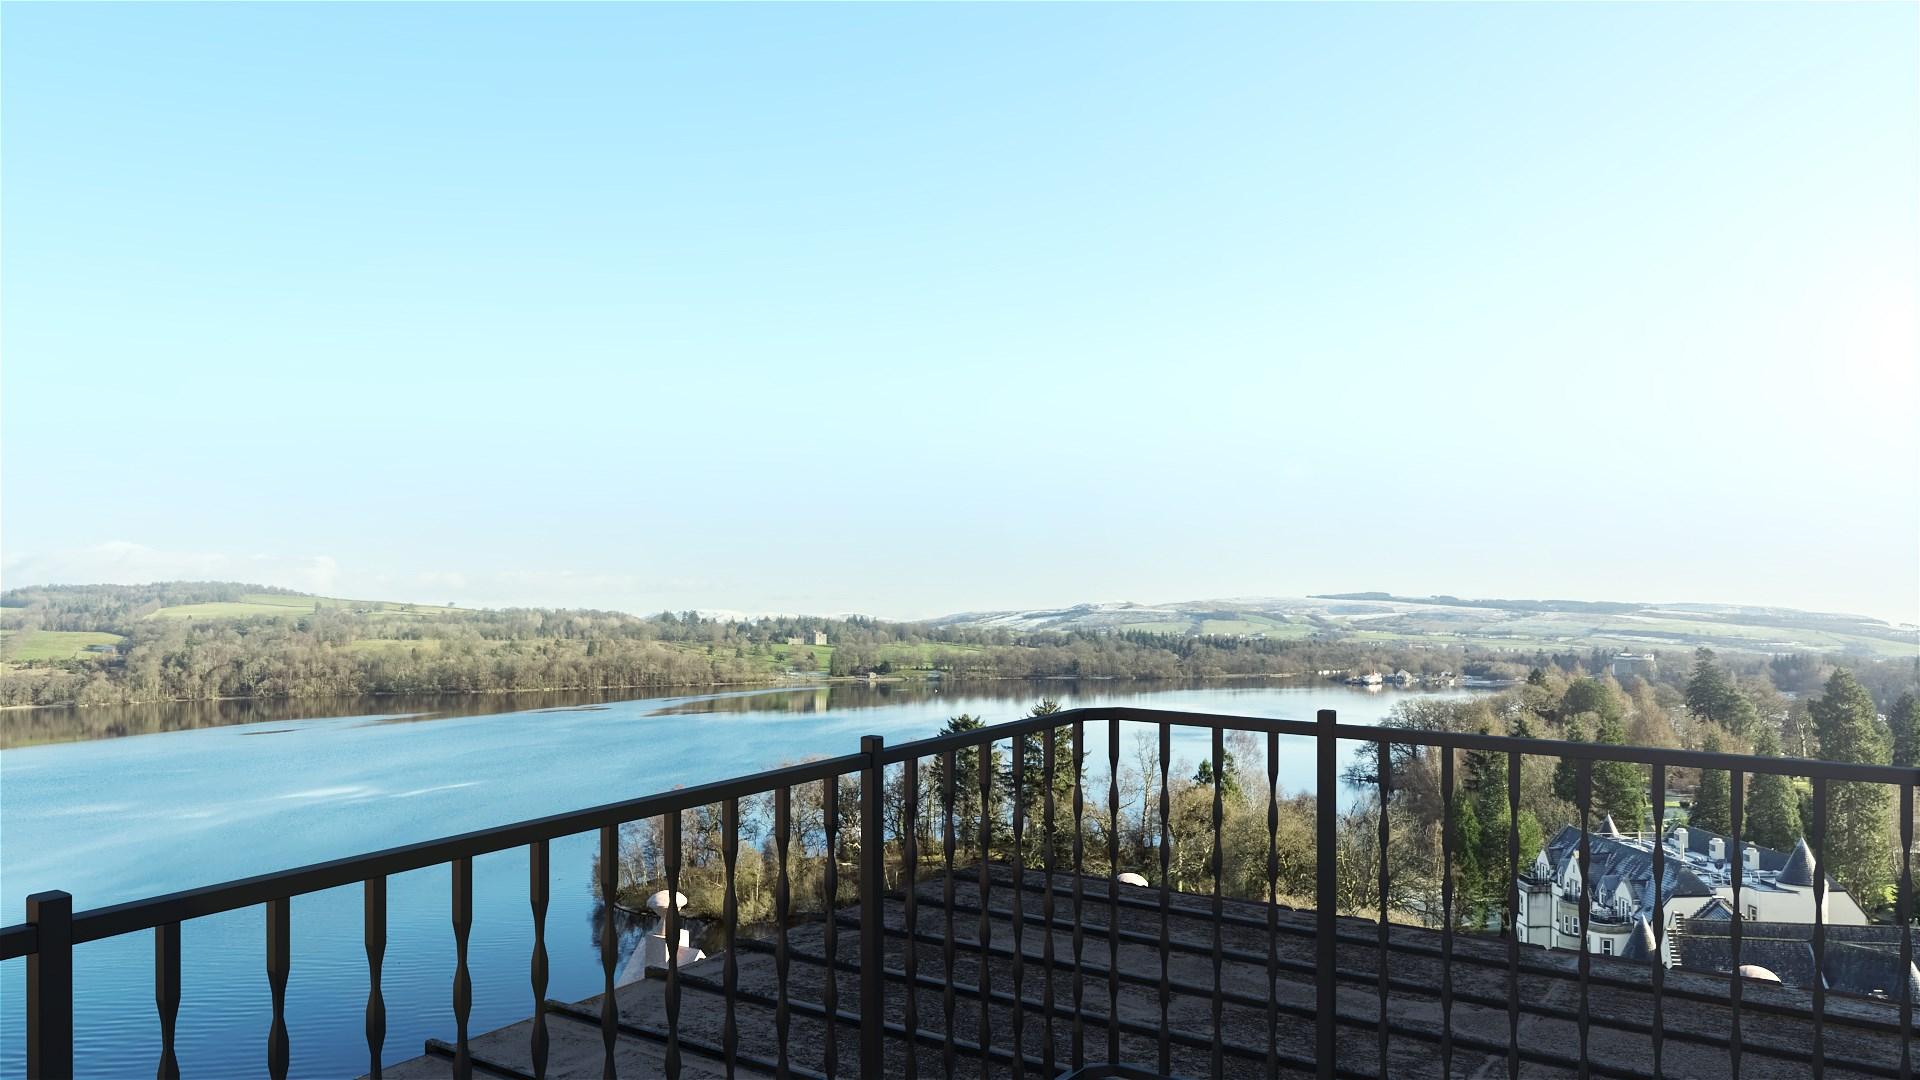 Balcony of penthouse suite overlooking loch lomond